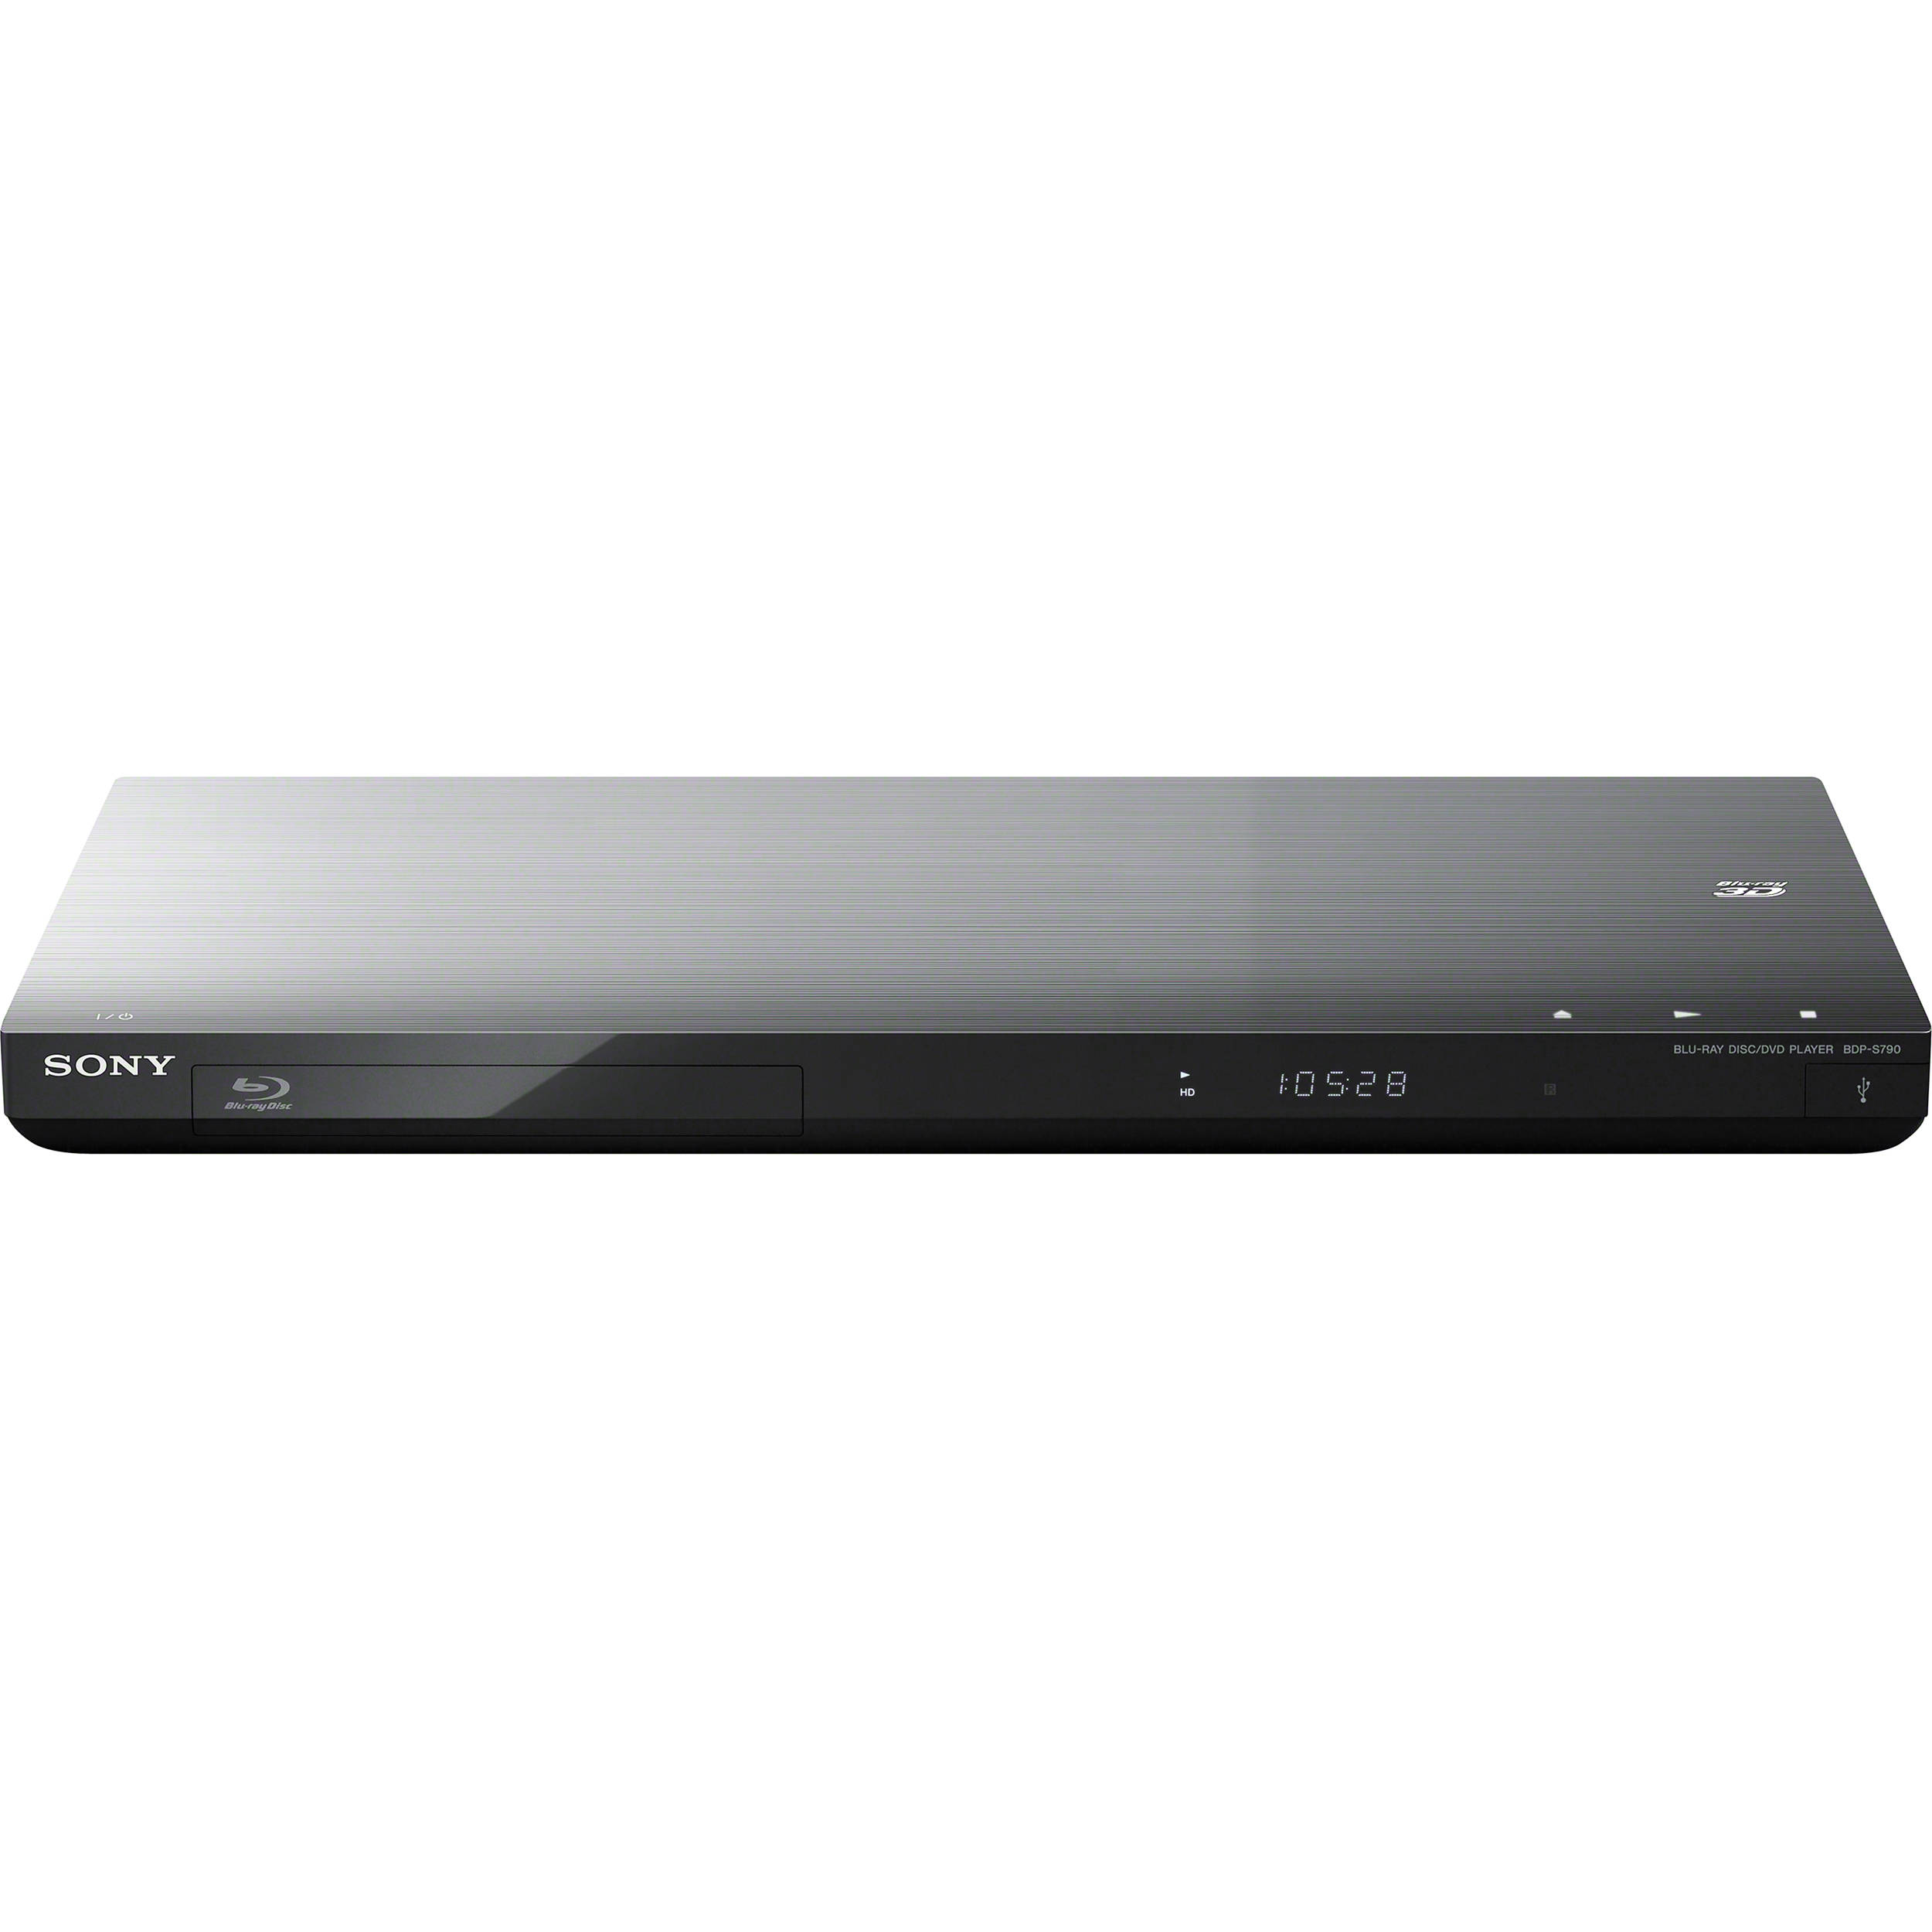 Sony BDP-S790 4K And 3D Blu-ray Disc Player BDPS790 B&H Photo